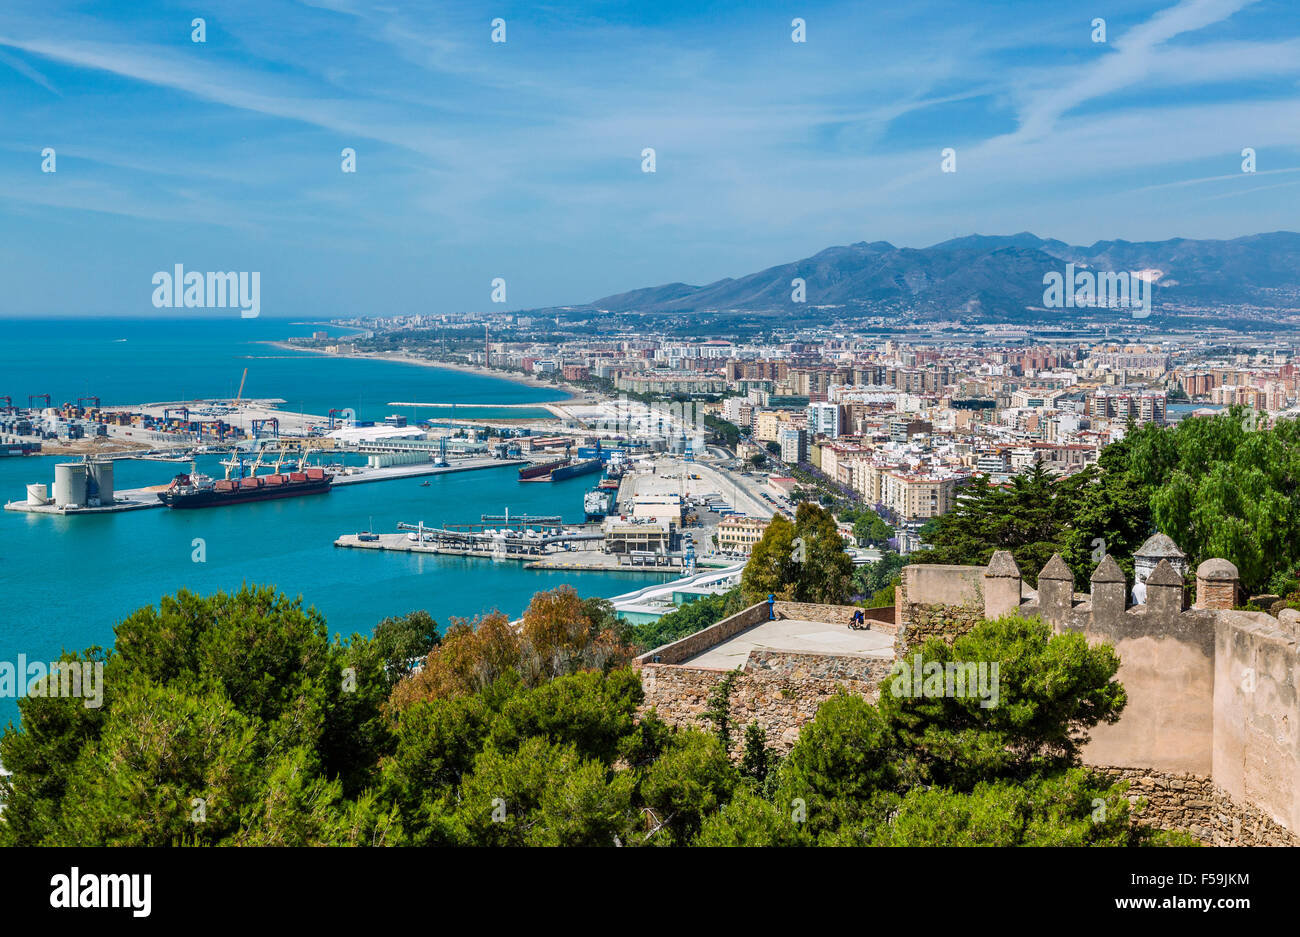 Spain, Andalusia, Malaga Province, Malaga City, view of the Port of Malaga from the fortifications of Gibralfaro - Stock Image